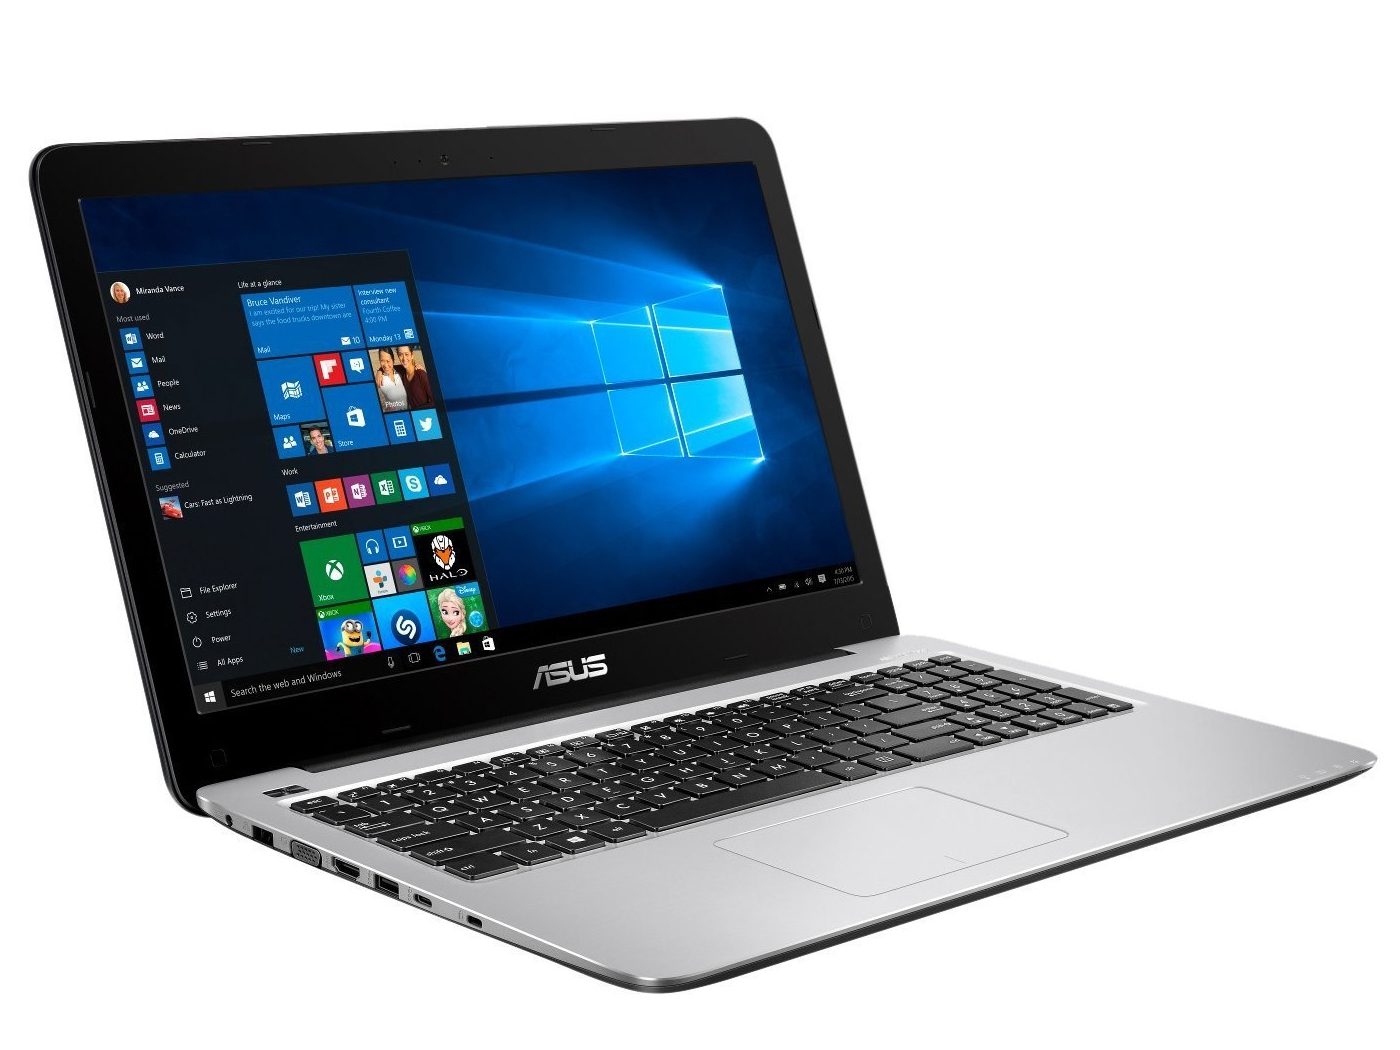 Asus Vivobook X556uq Xo076t Notebook Review